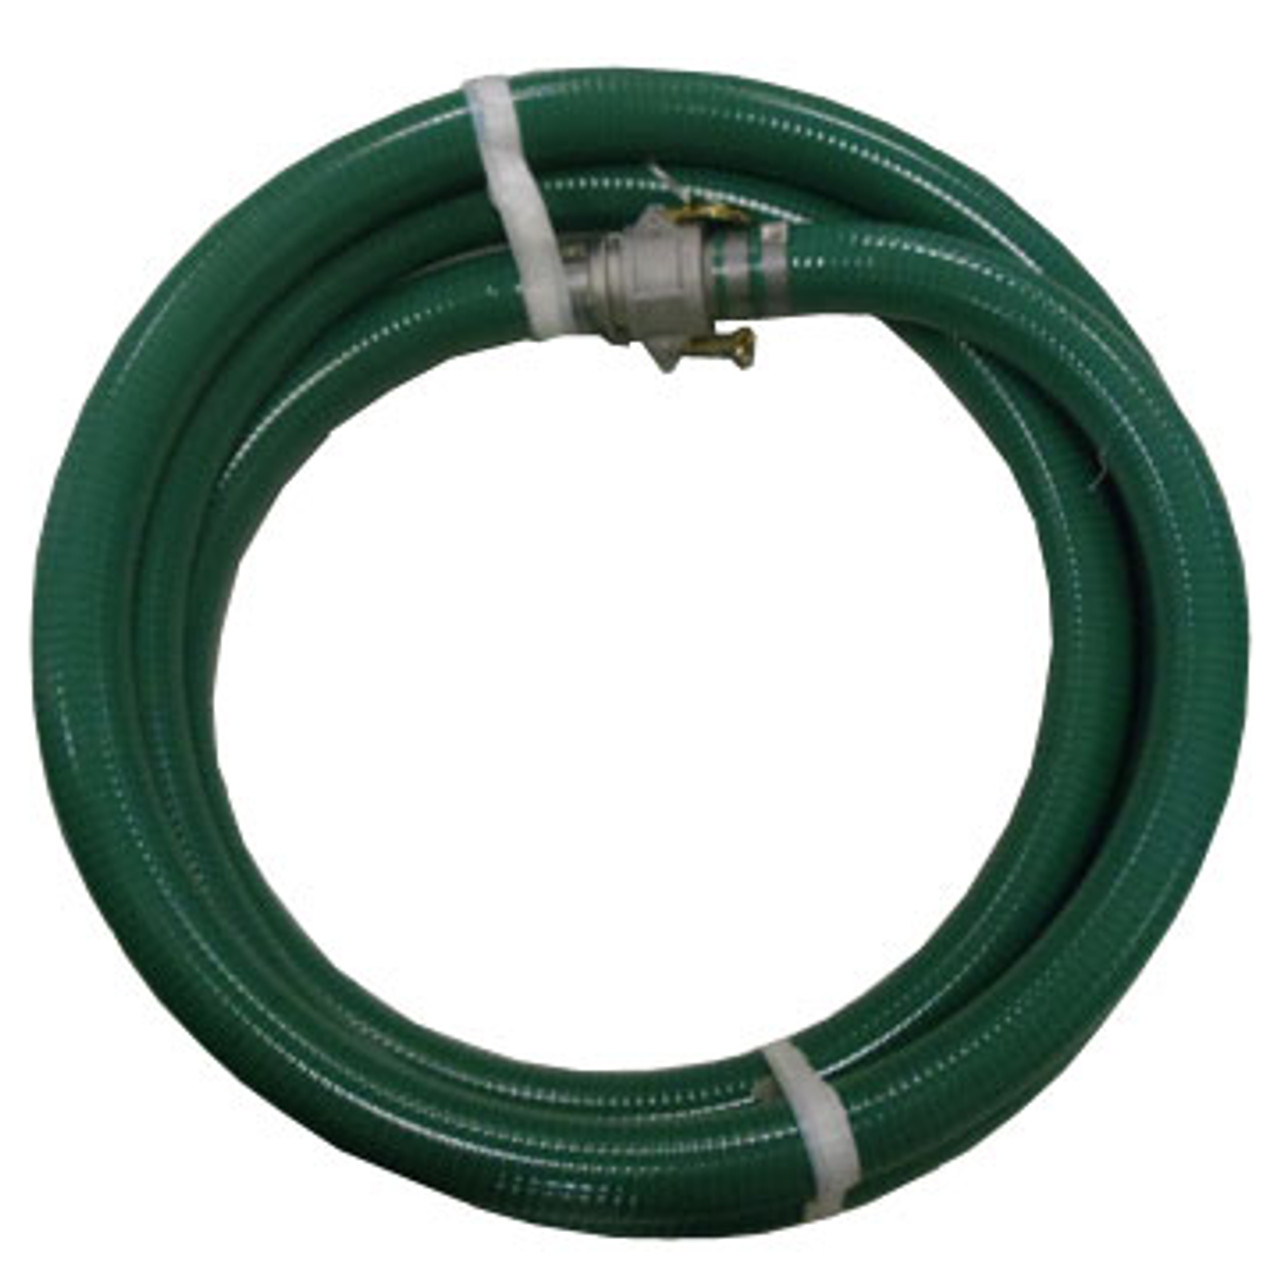 "HA GD1550-Q 1.50"" x 50' Green, Quick Coupled M x F Andrews Aluminum"